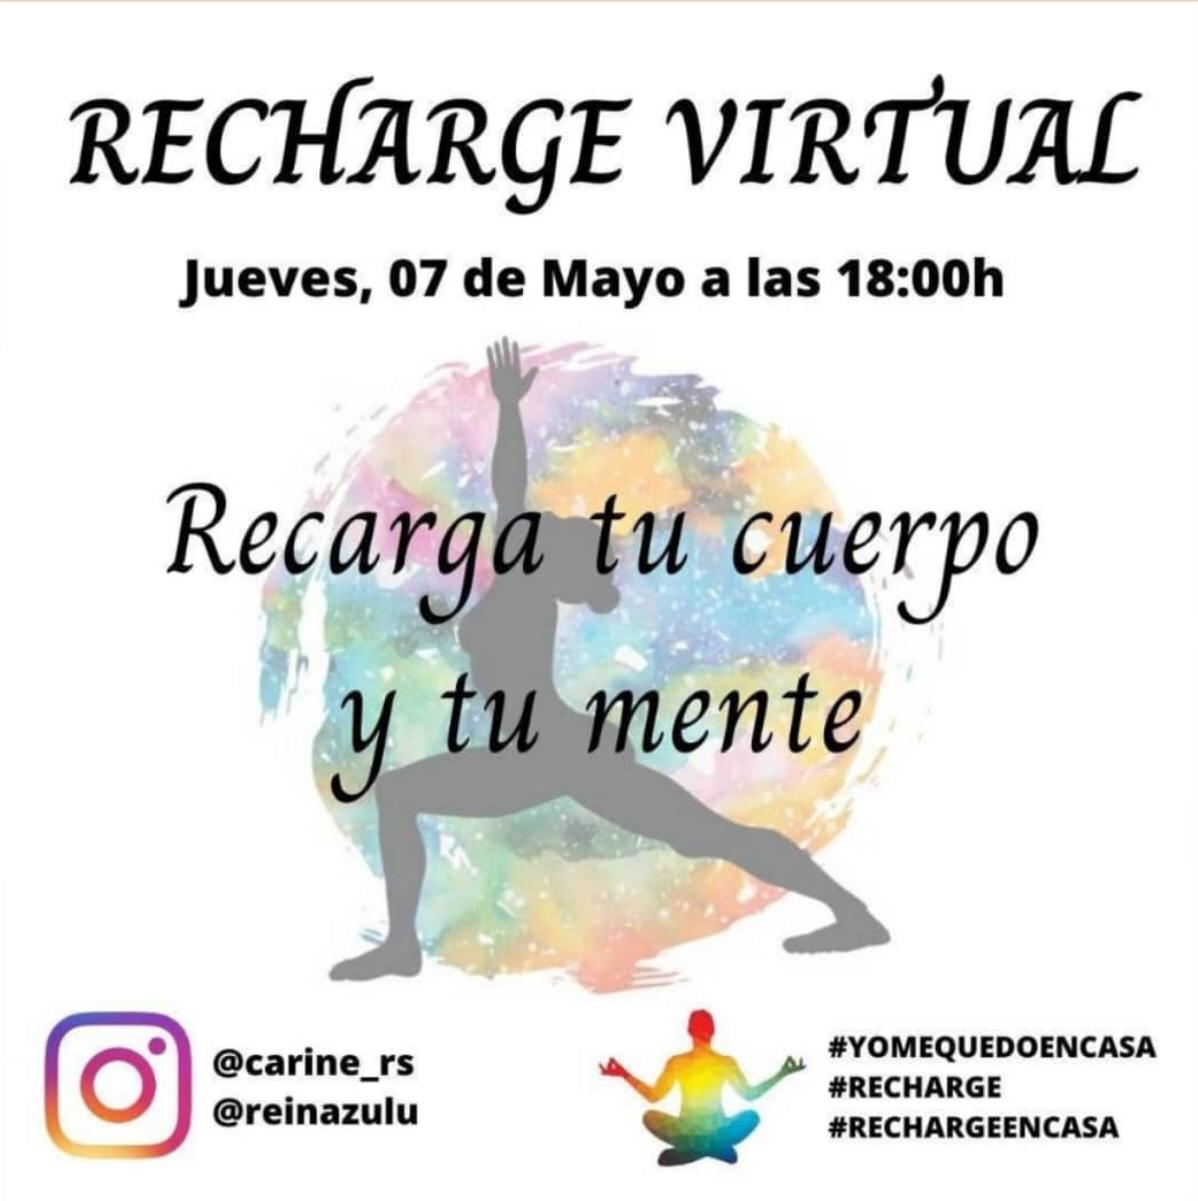 Recharge virtual